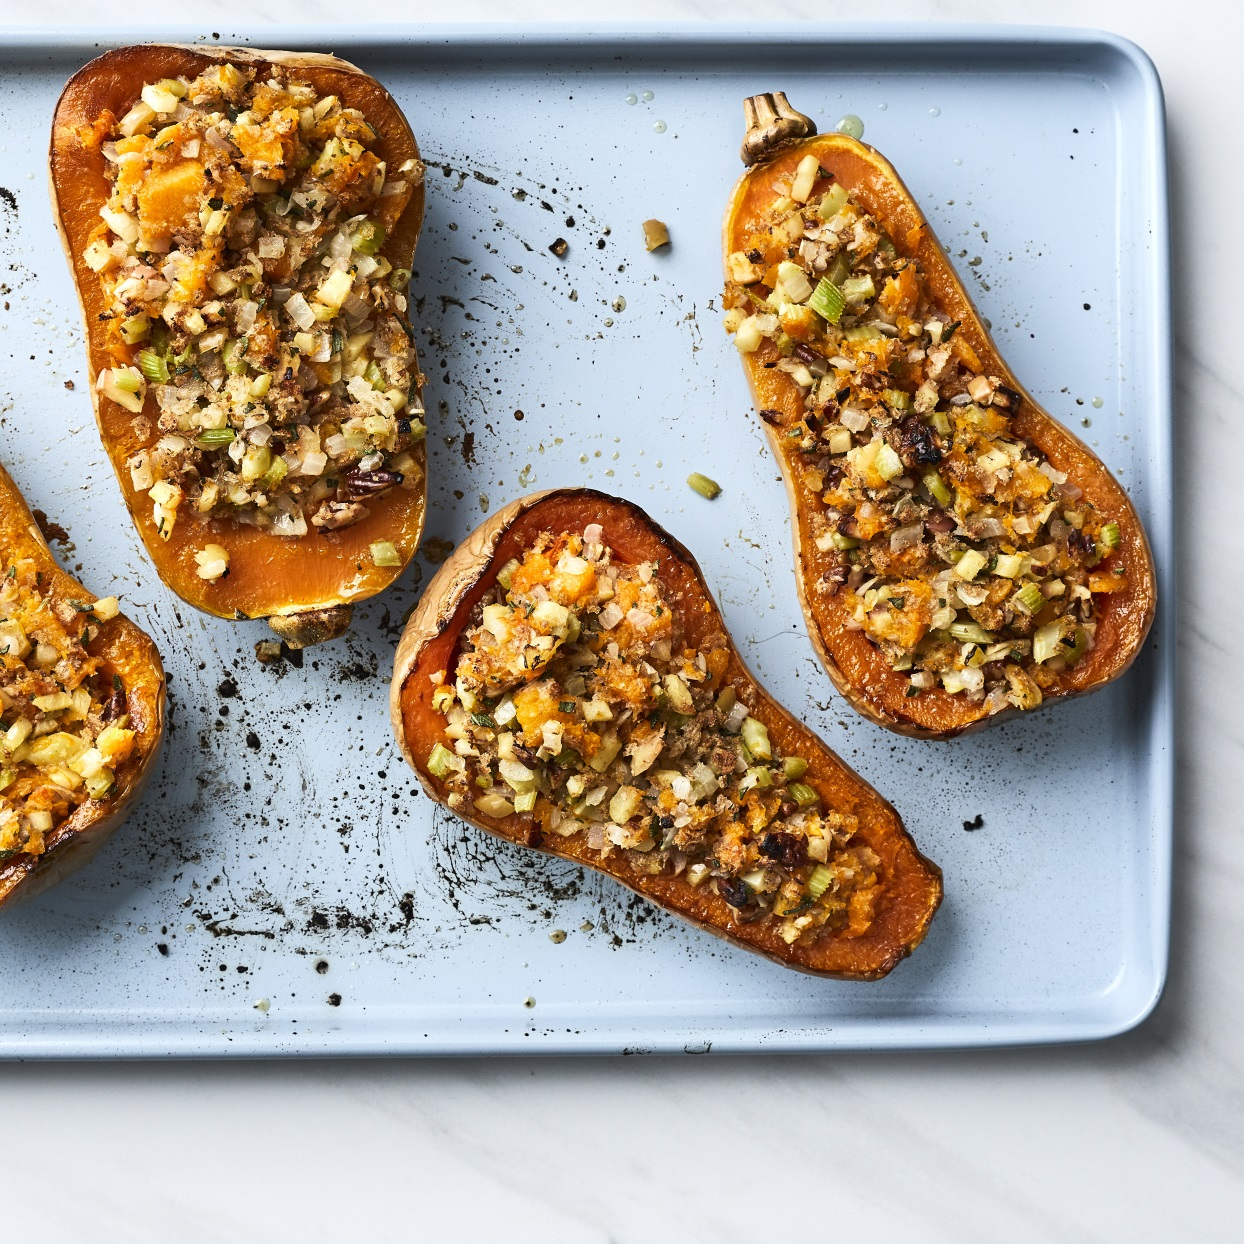 Apple and pecan stuffed butternut squash